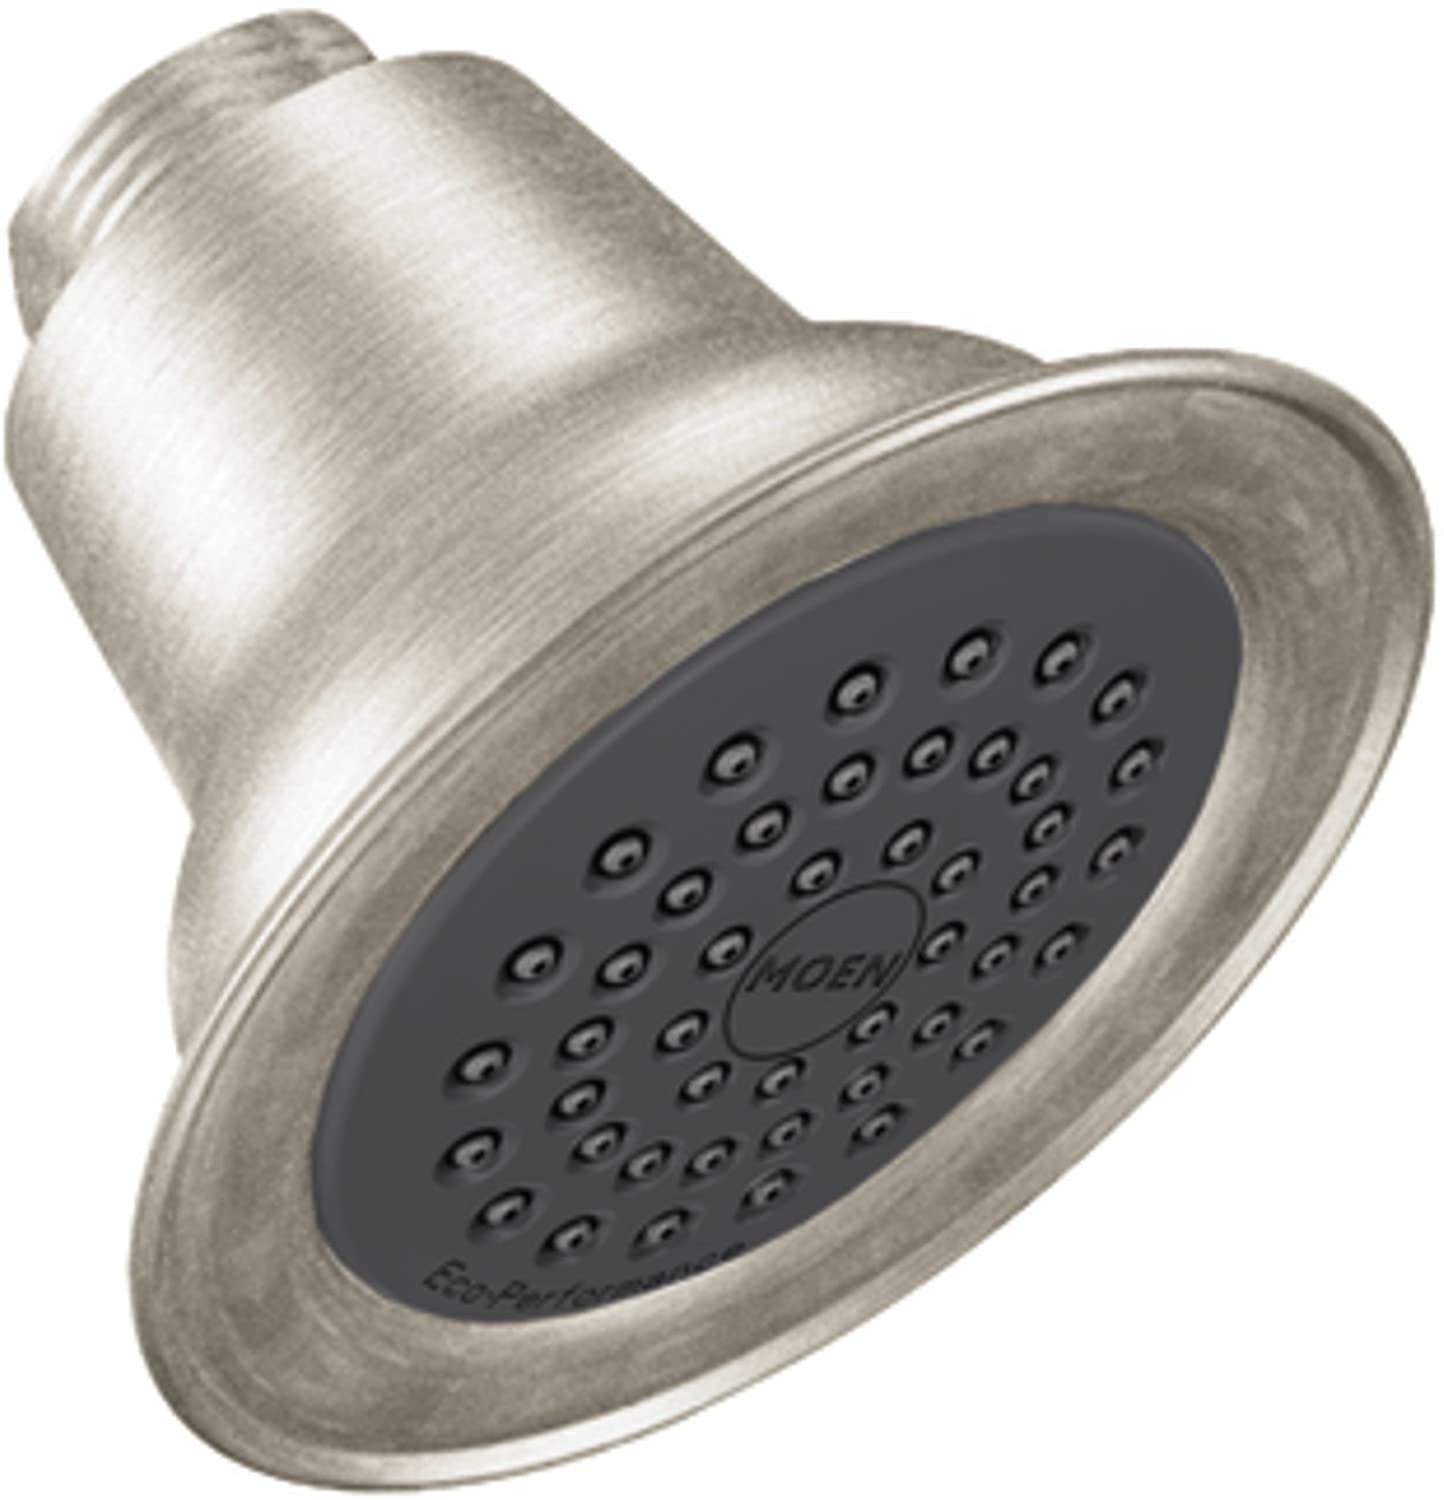 Moen 5263EP15CBN Commercial M-Dura Vandal-Resistant Eco-Performance Showerhead, 1.5-gpm, Classic Brushed Nickel